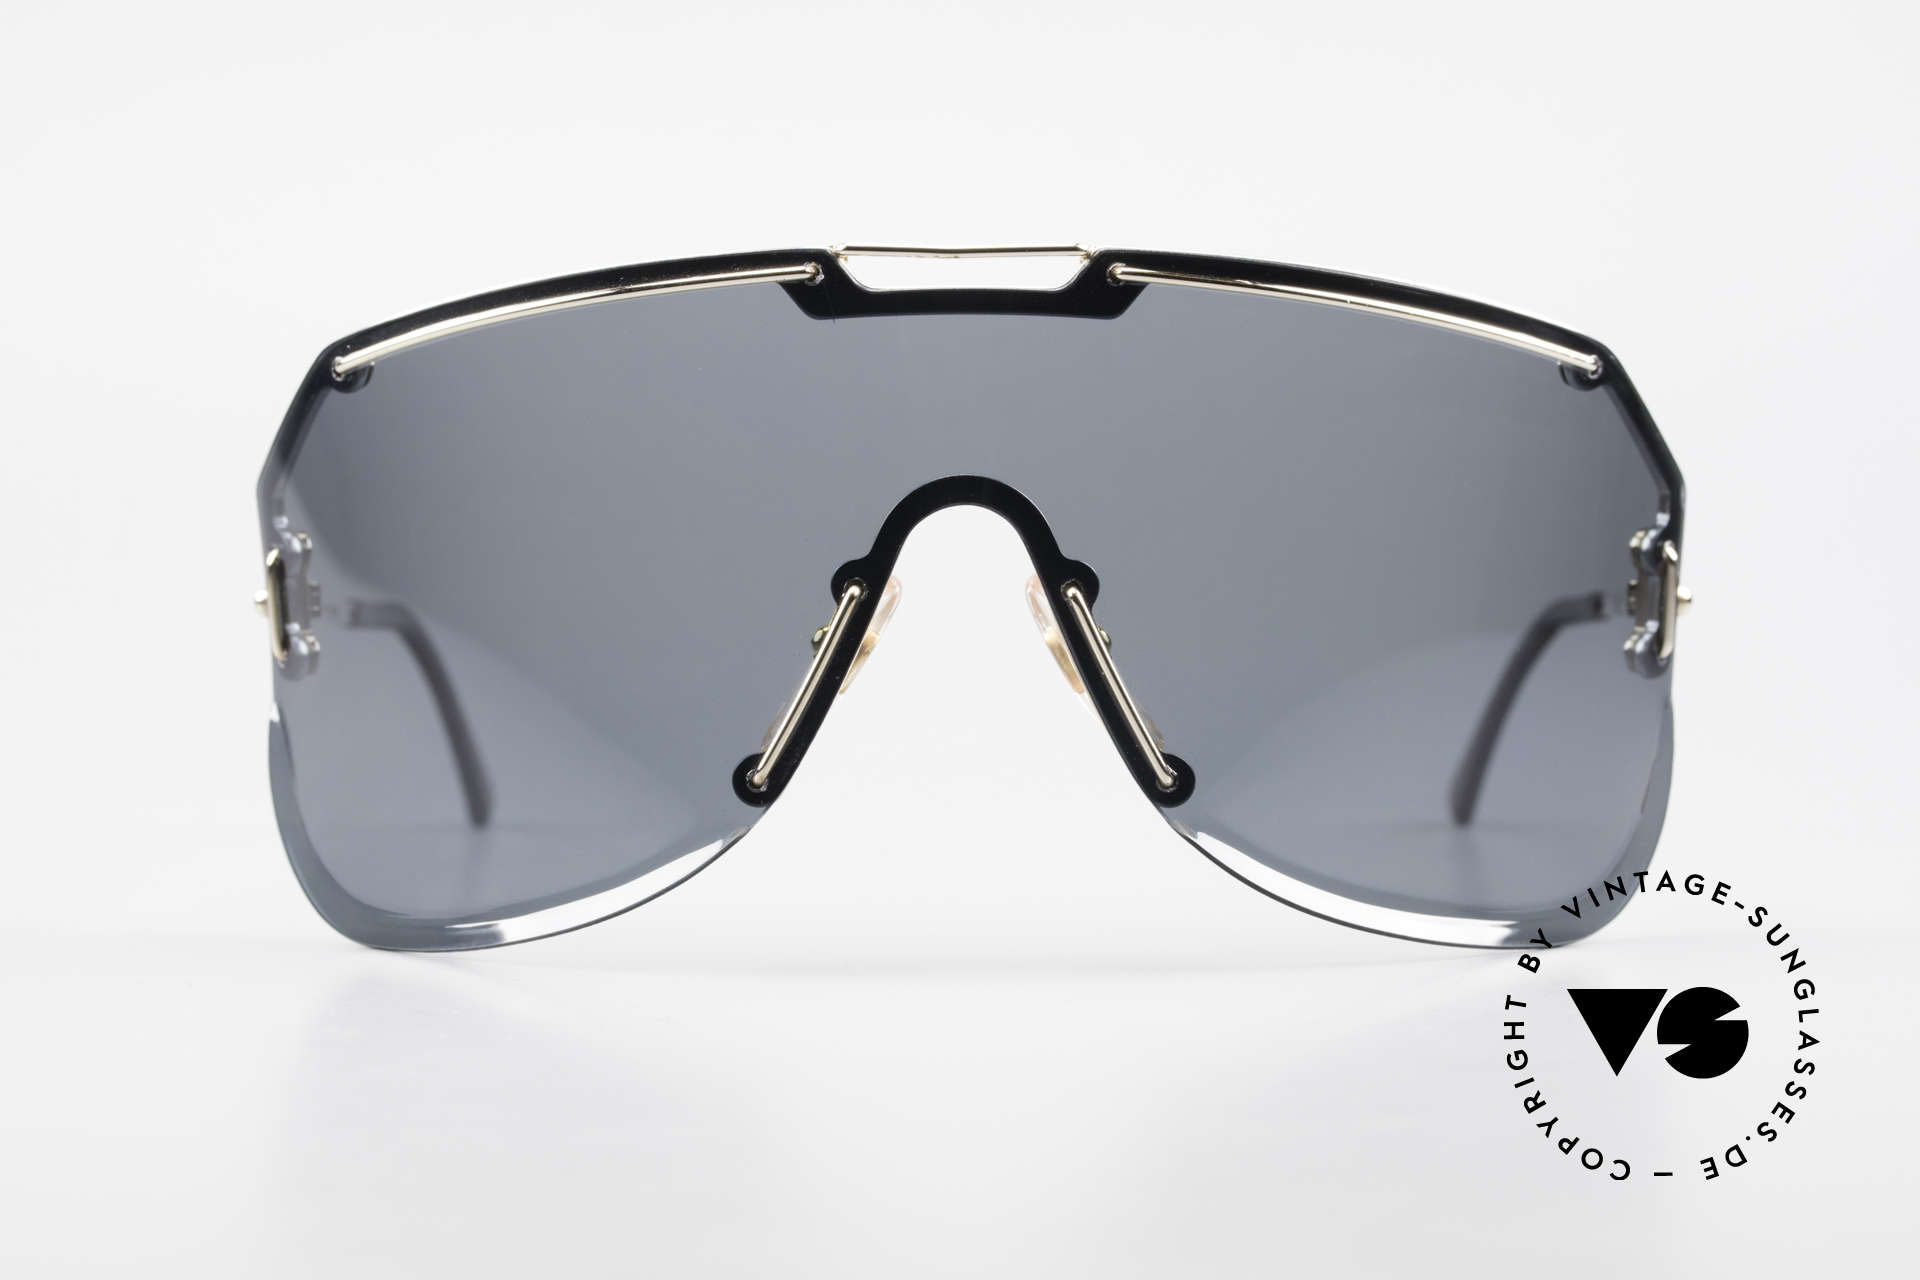 """Boeing 5703 80's Luxury Pilots Sunglasses, 'panorama view"""" design with a polarized lens, 100% UV, Made for Men"""